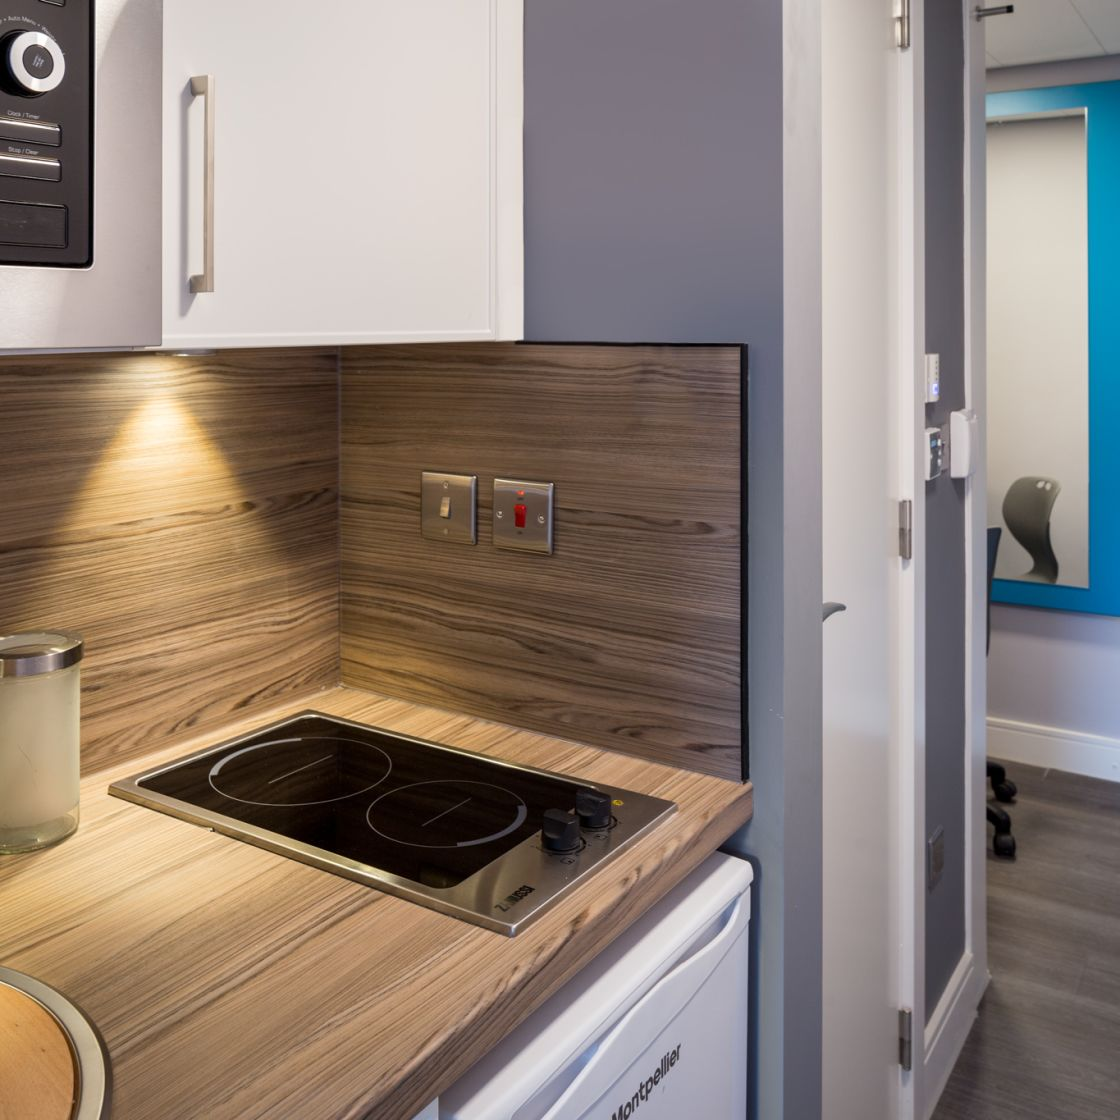 Smart Studio Apartment Kitchen in Leeds. IconInc, The Glassworks. Student Accommodation in Leeds